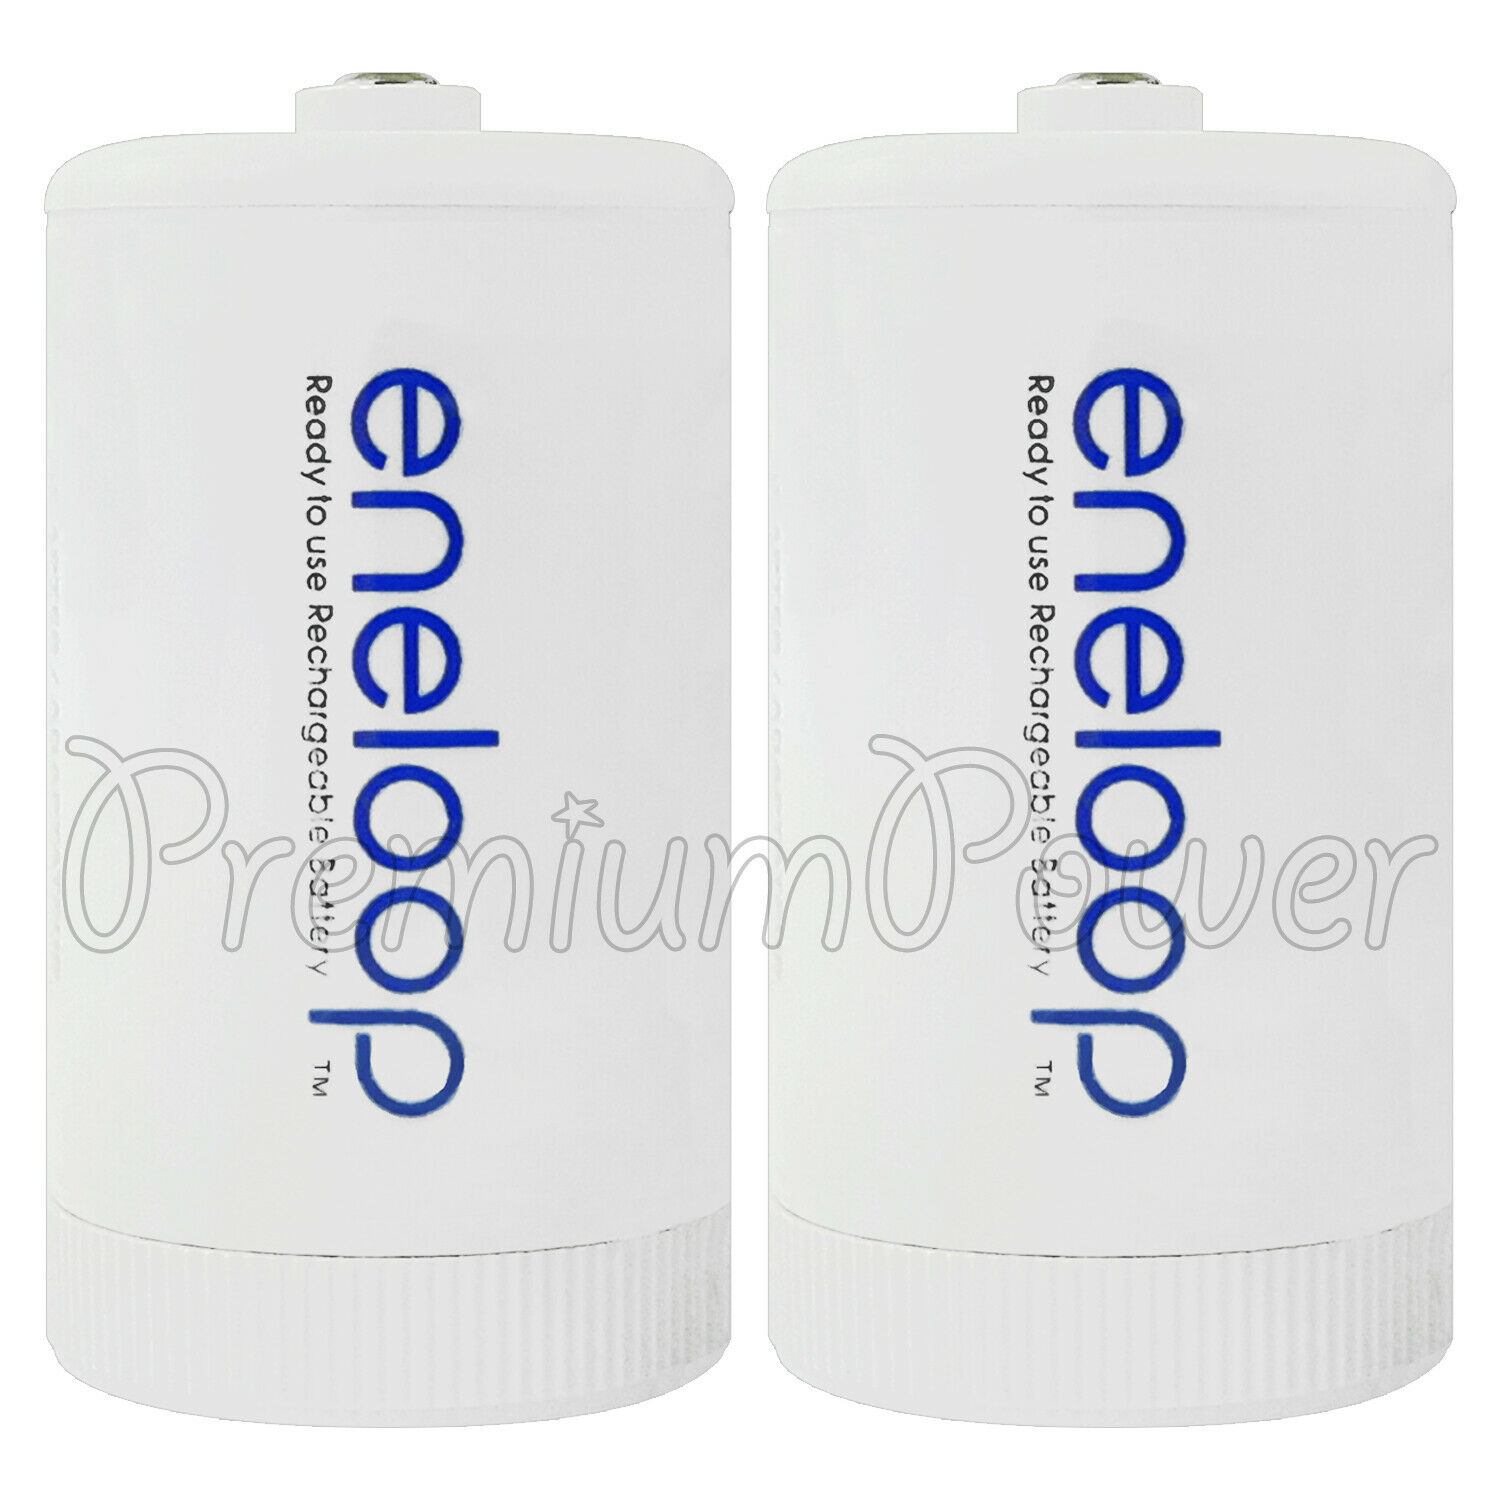 2x eneloop size D Adapter Converts AA battery converter spacer